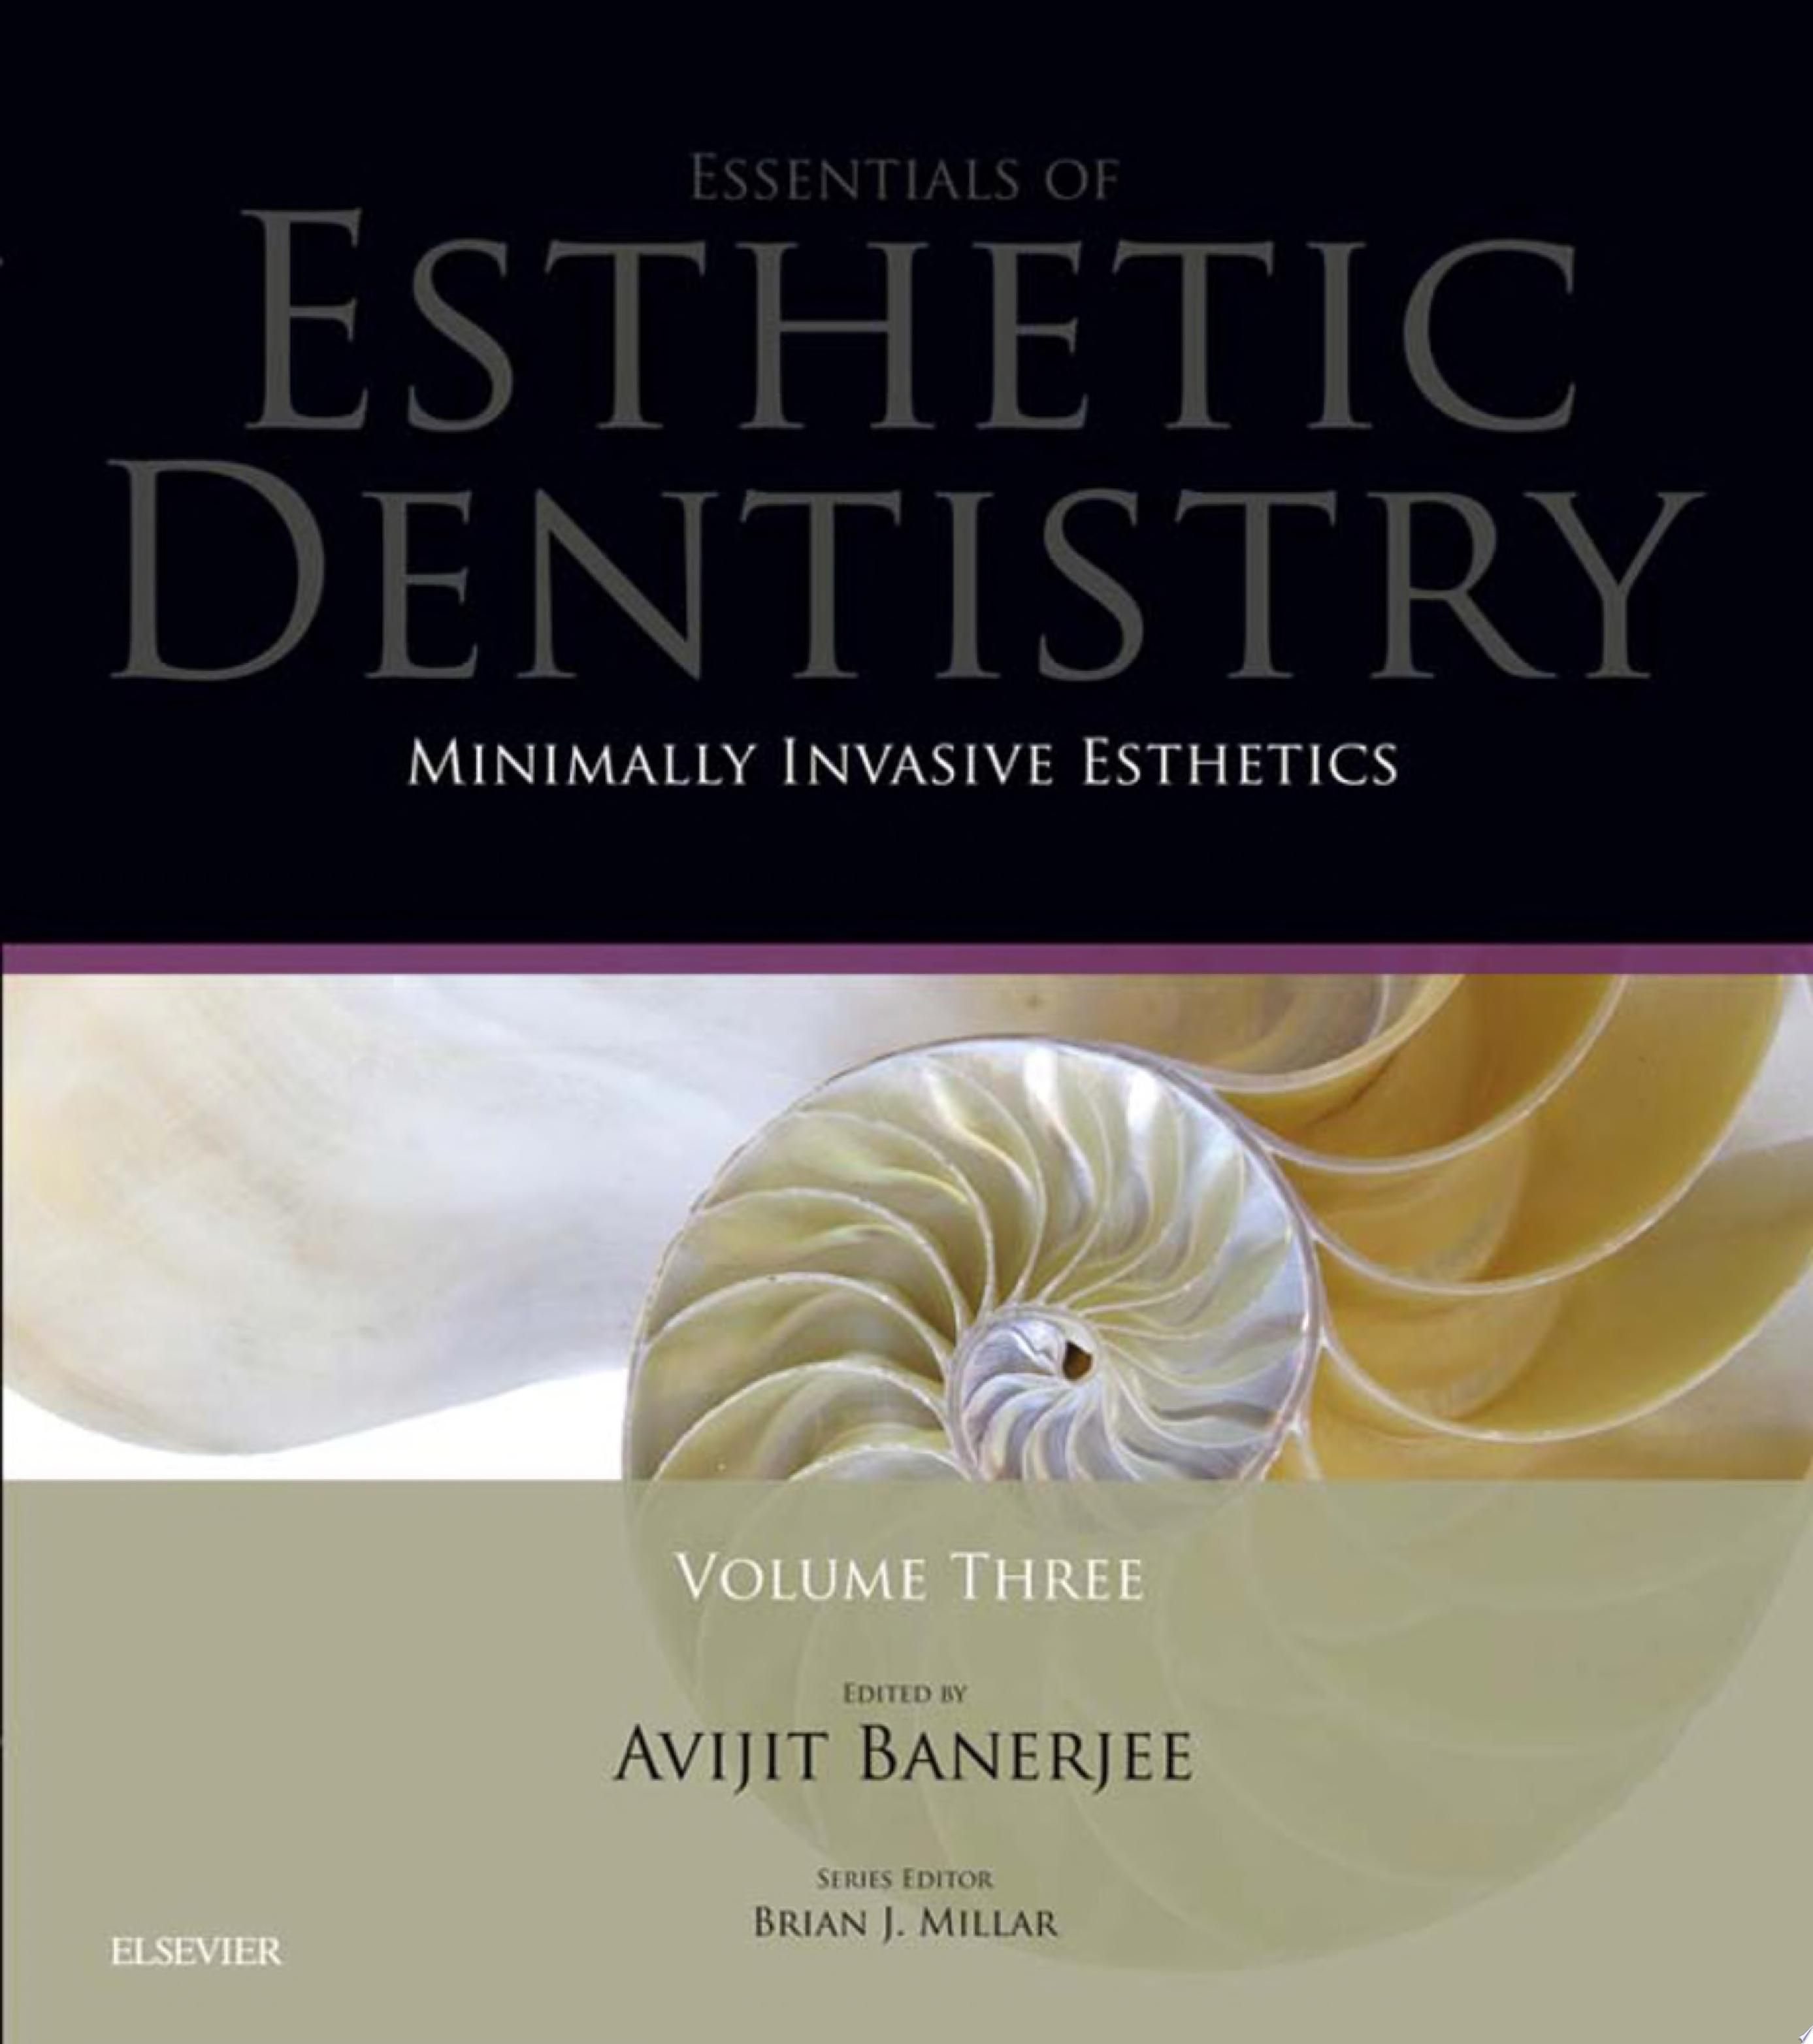 Minimally Invasive Esthetics